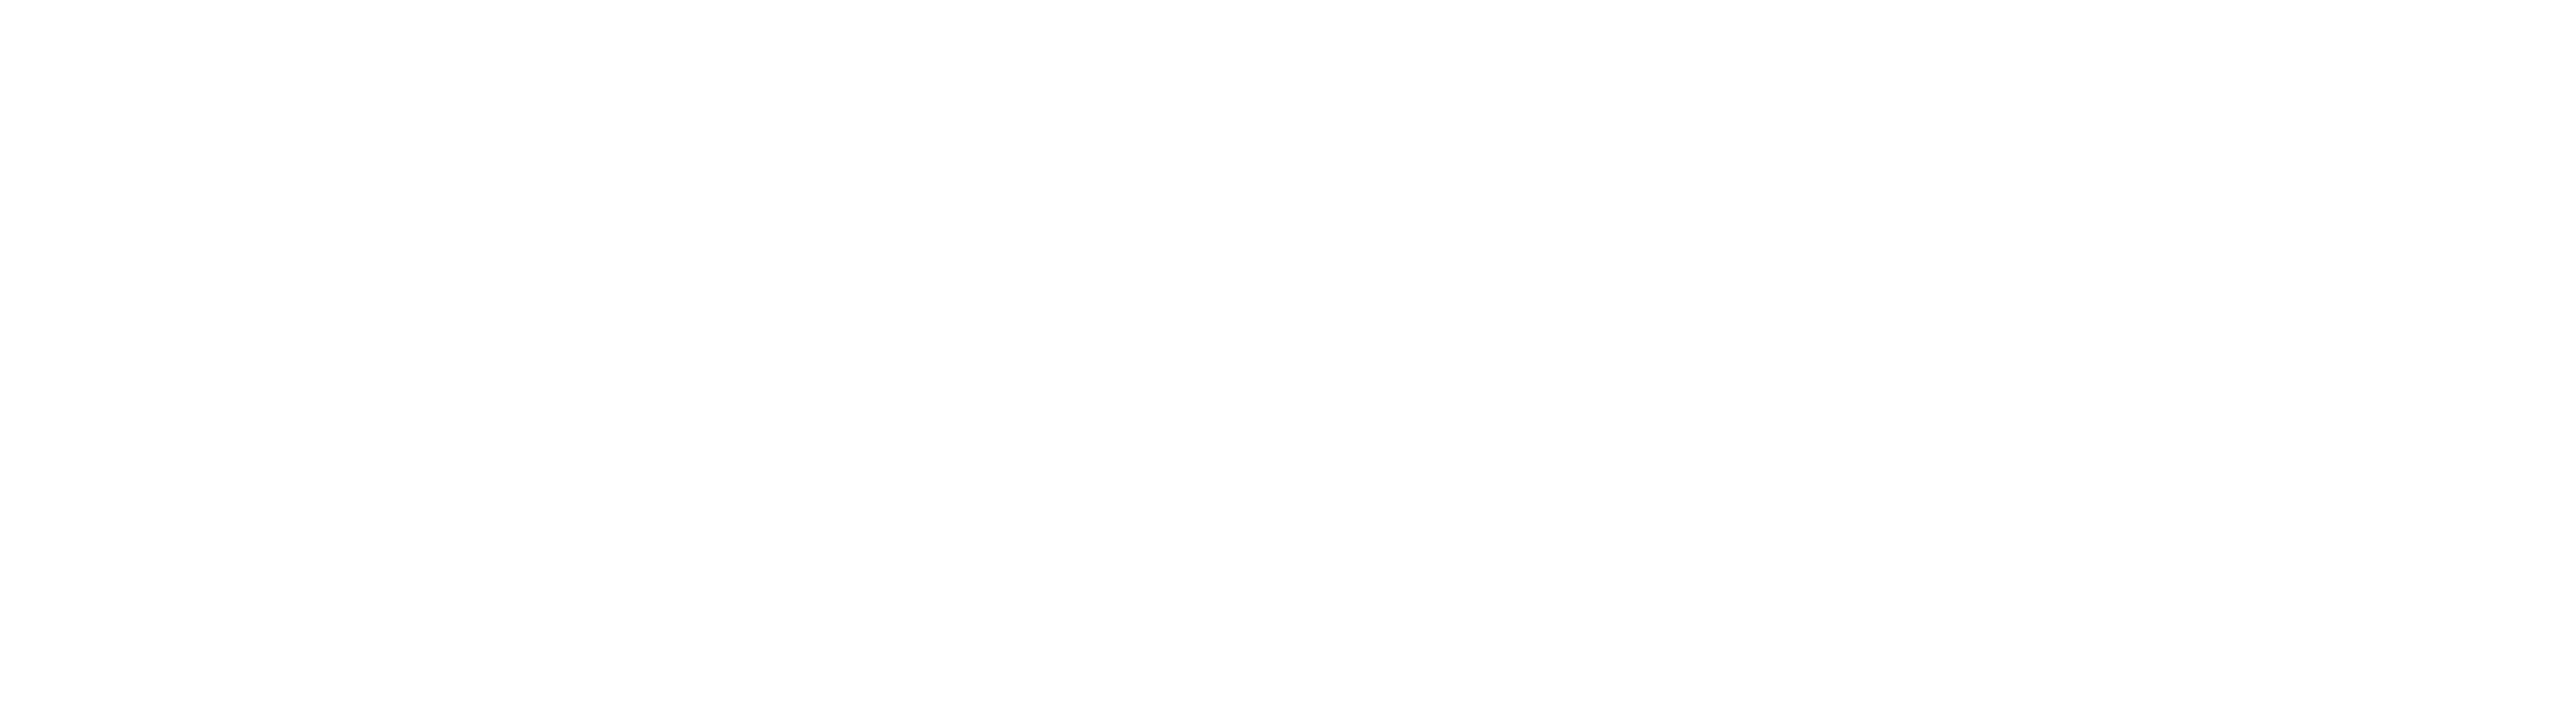 Floral Fantasy Florist & Decorators Ltd. - Flower Delivery in Brooklyn, NY